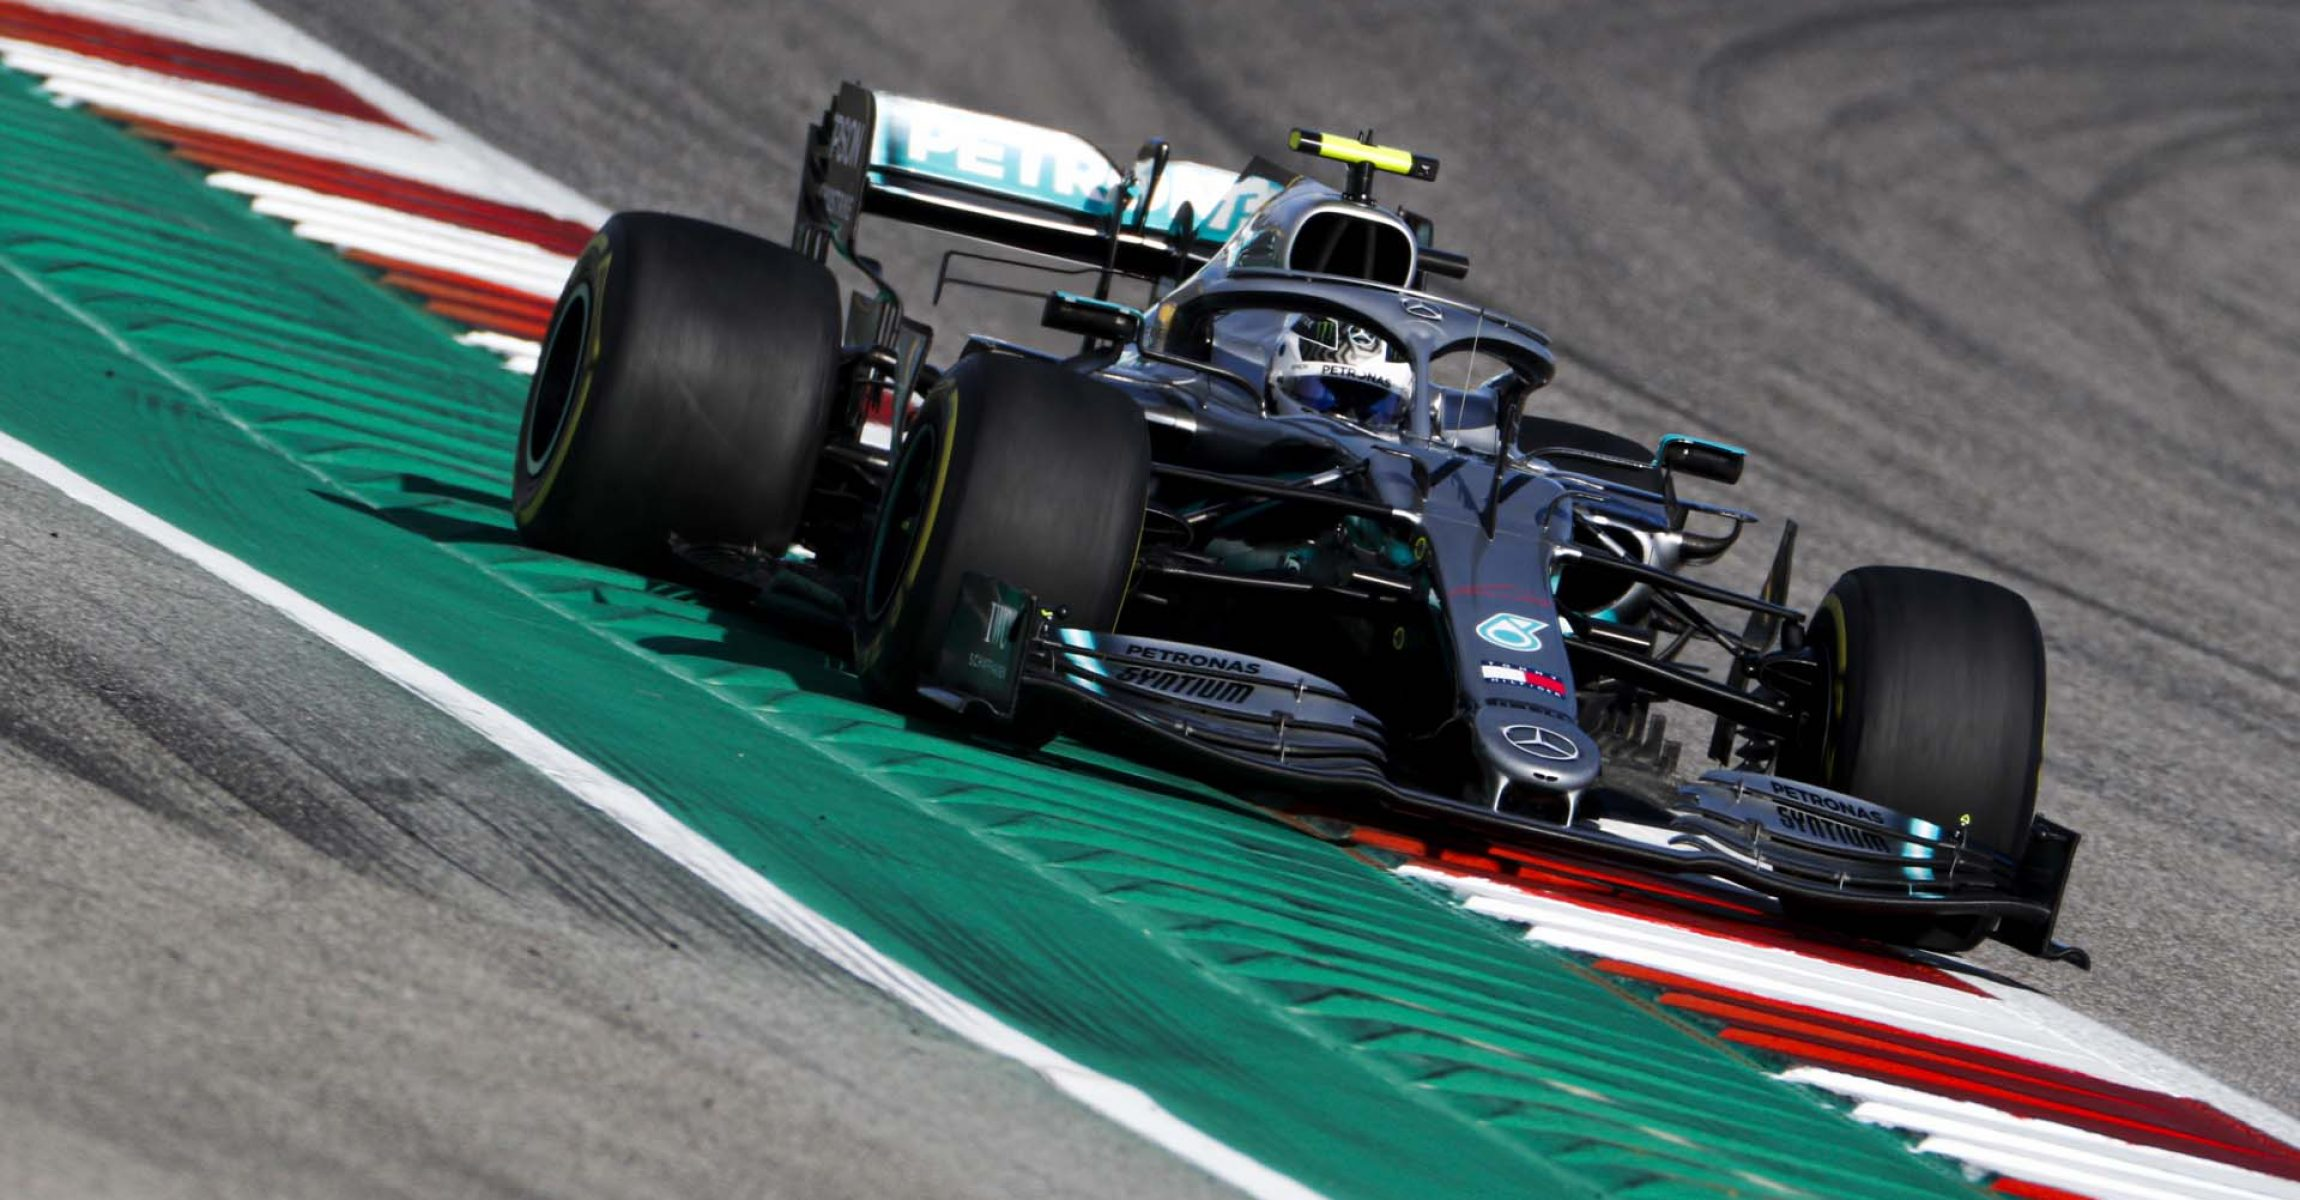 2019 United States Grand Prix, Friday - LAT Images Valtteri Bottas Mercedes